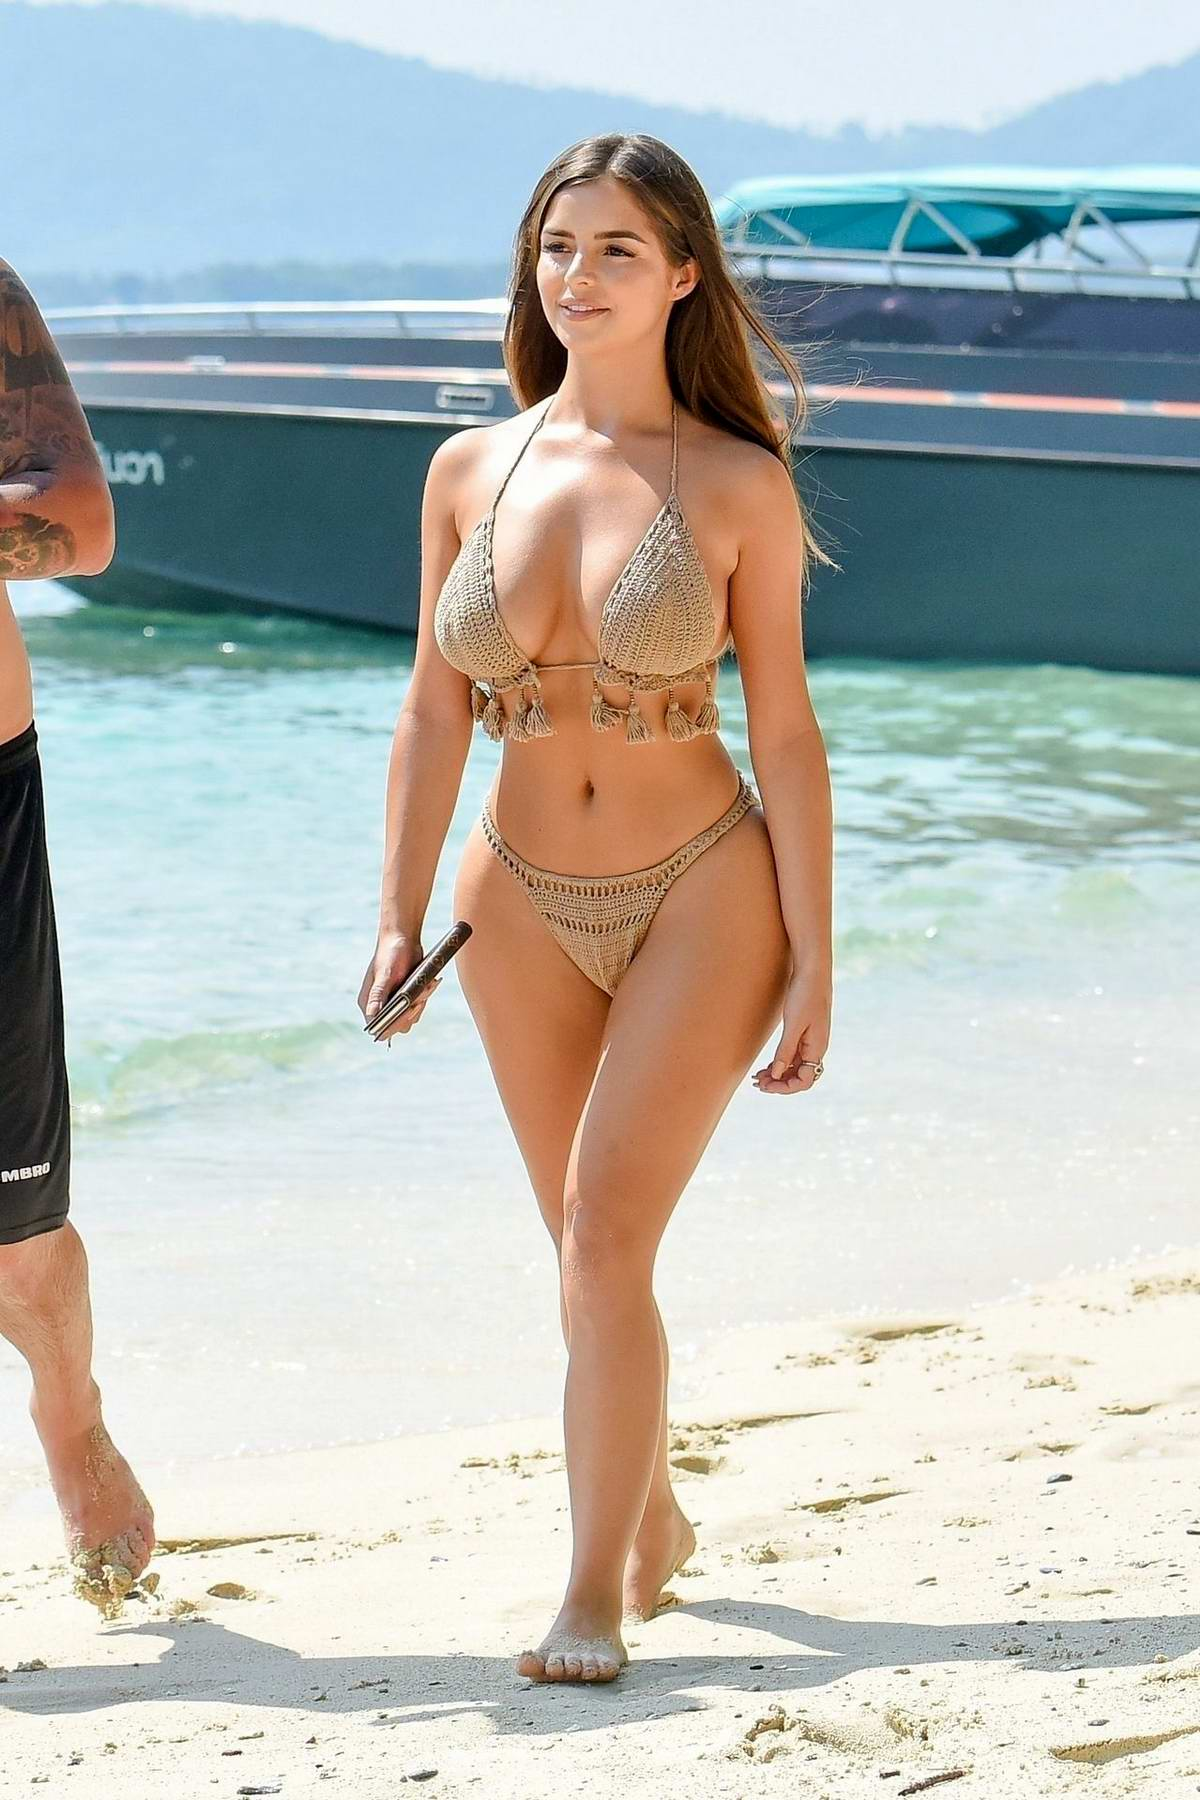 demi-rose-spotted-in-a-beige-knitted-bikini-during-a-beach-photoshoot-in-phuket-thailand-070219_2